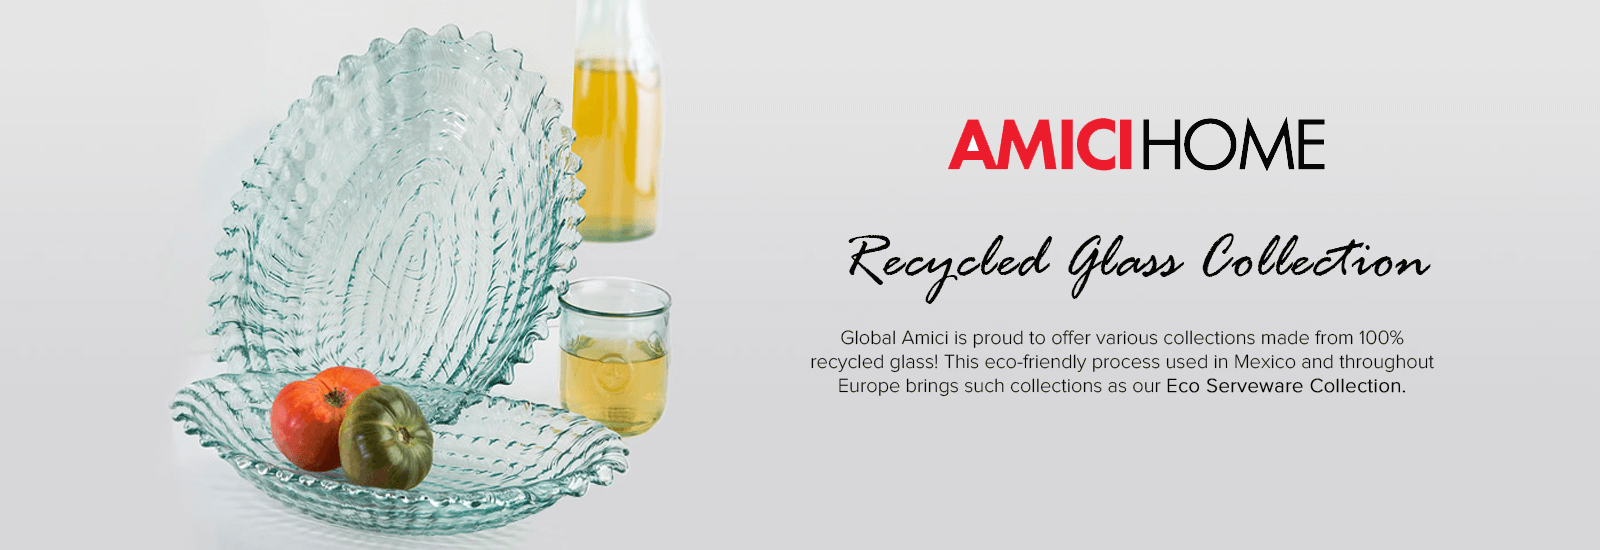 Amici Home Recycled Glass Collections